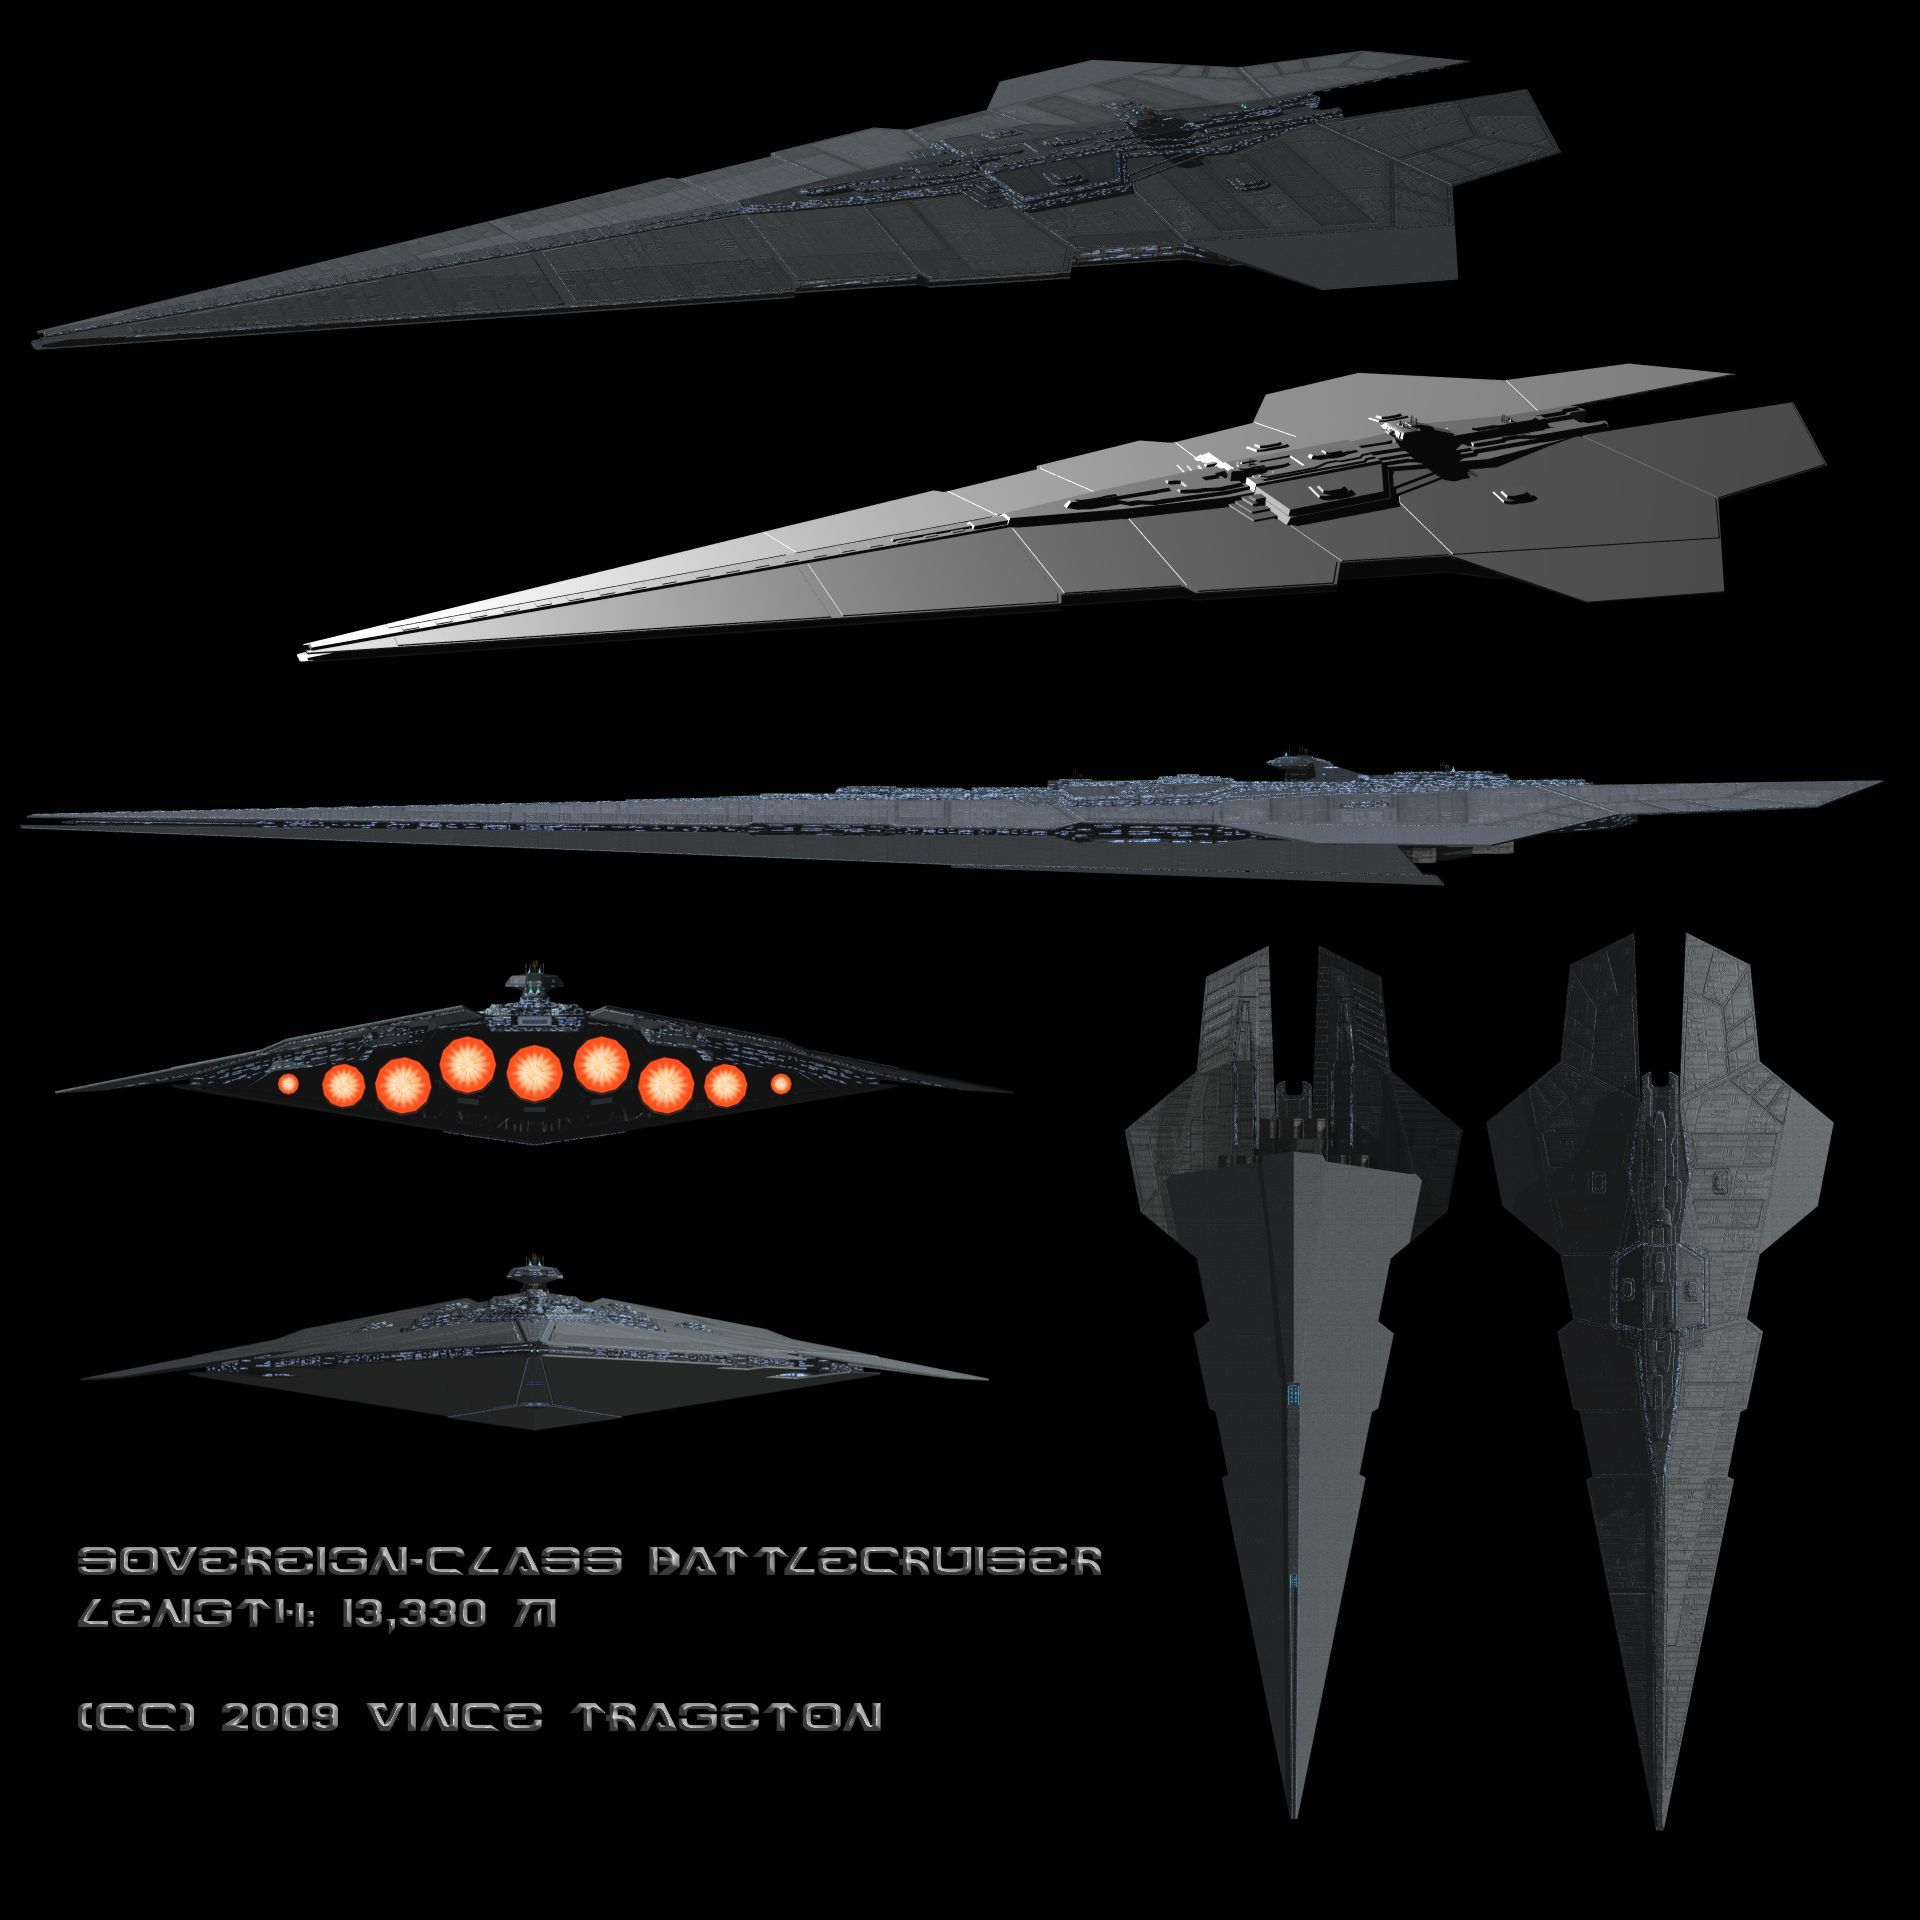 starship profile sovereignclass superstar battlecruiser